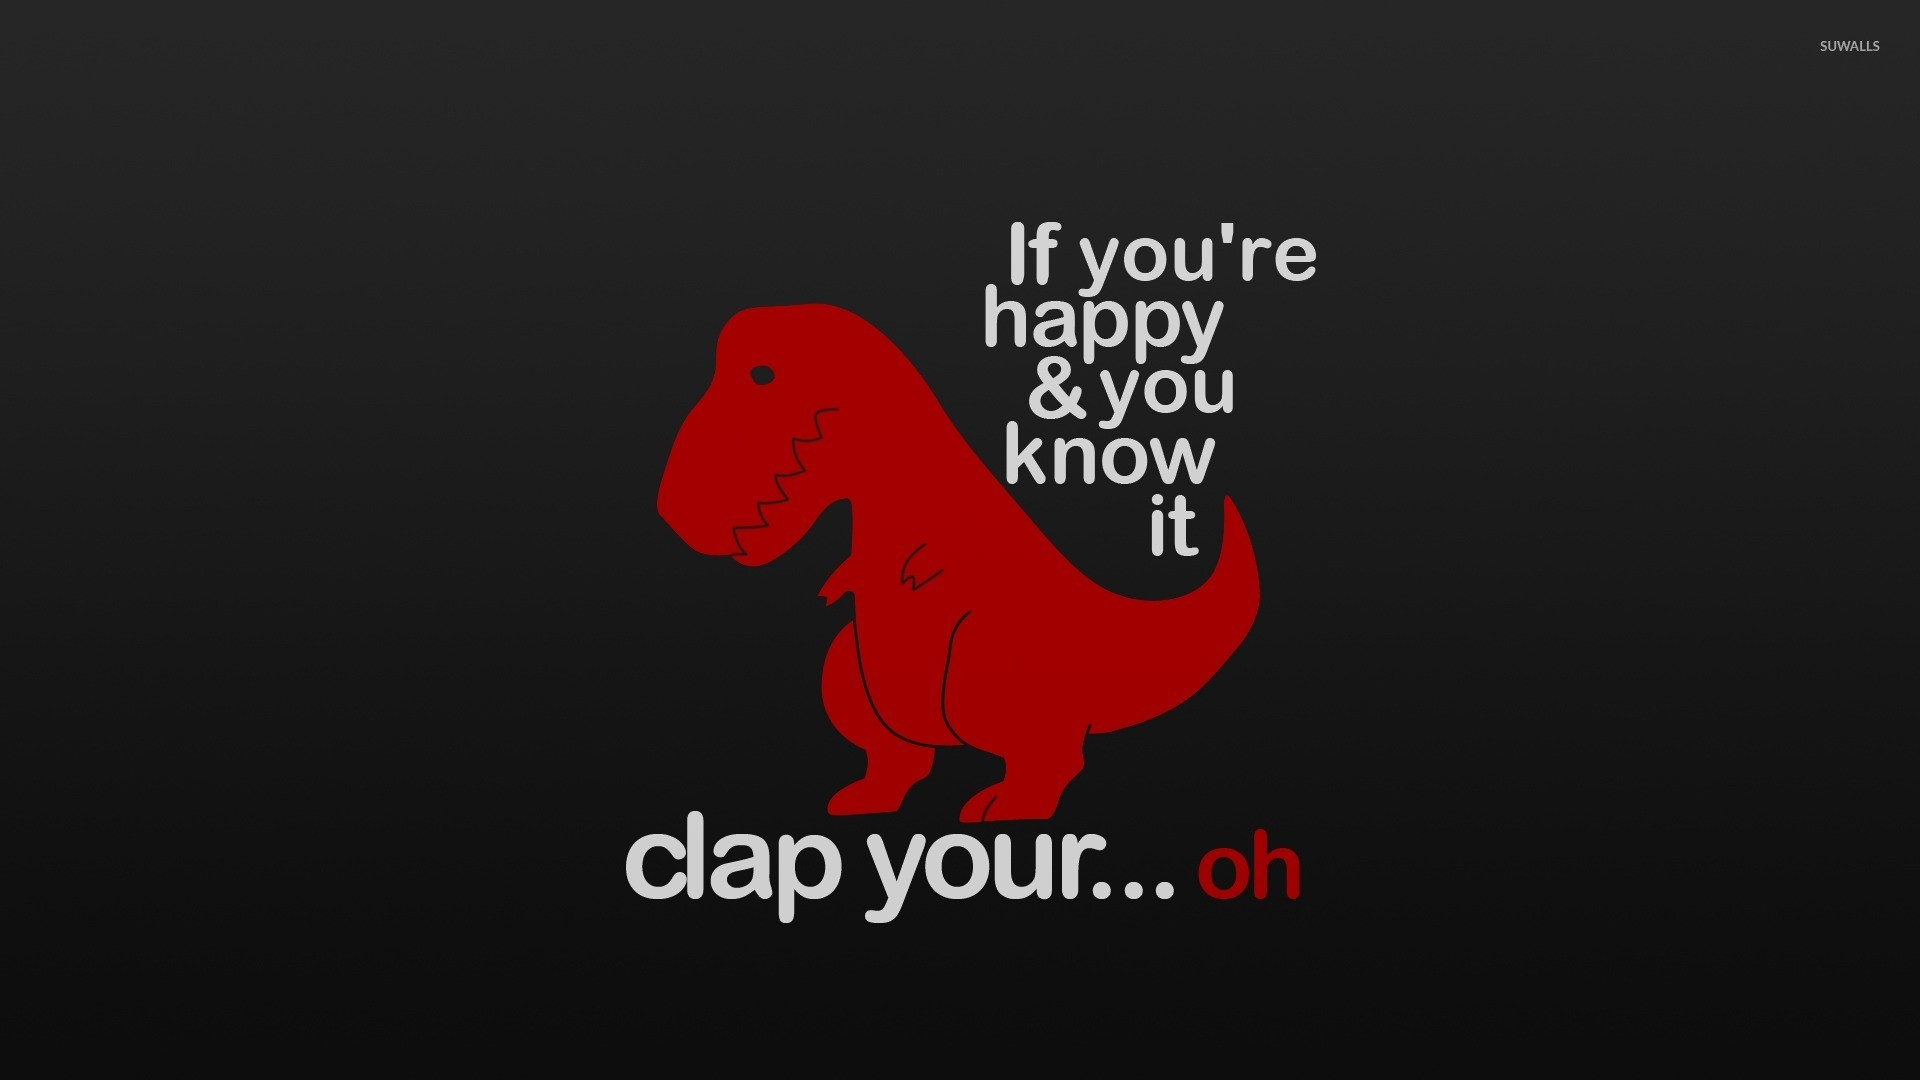 If you happy clap your… wallpaper jpg